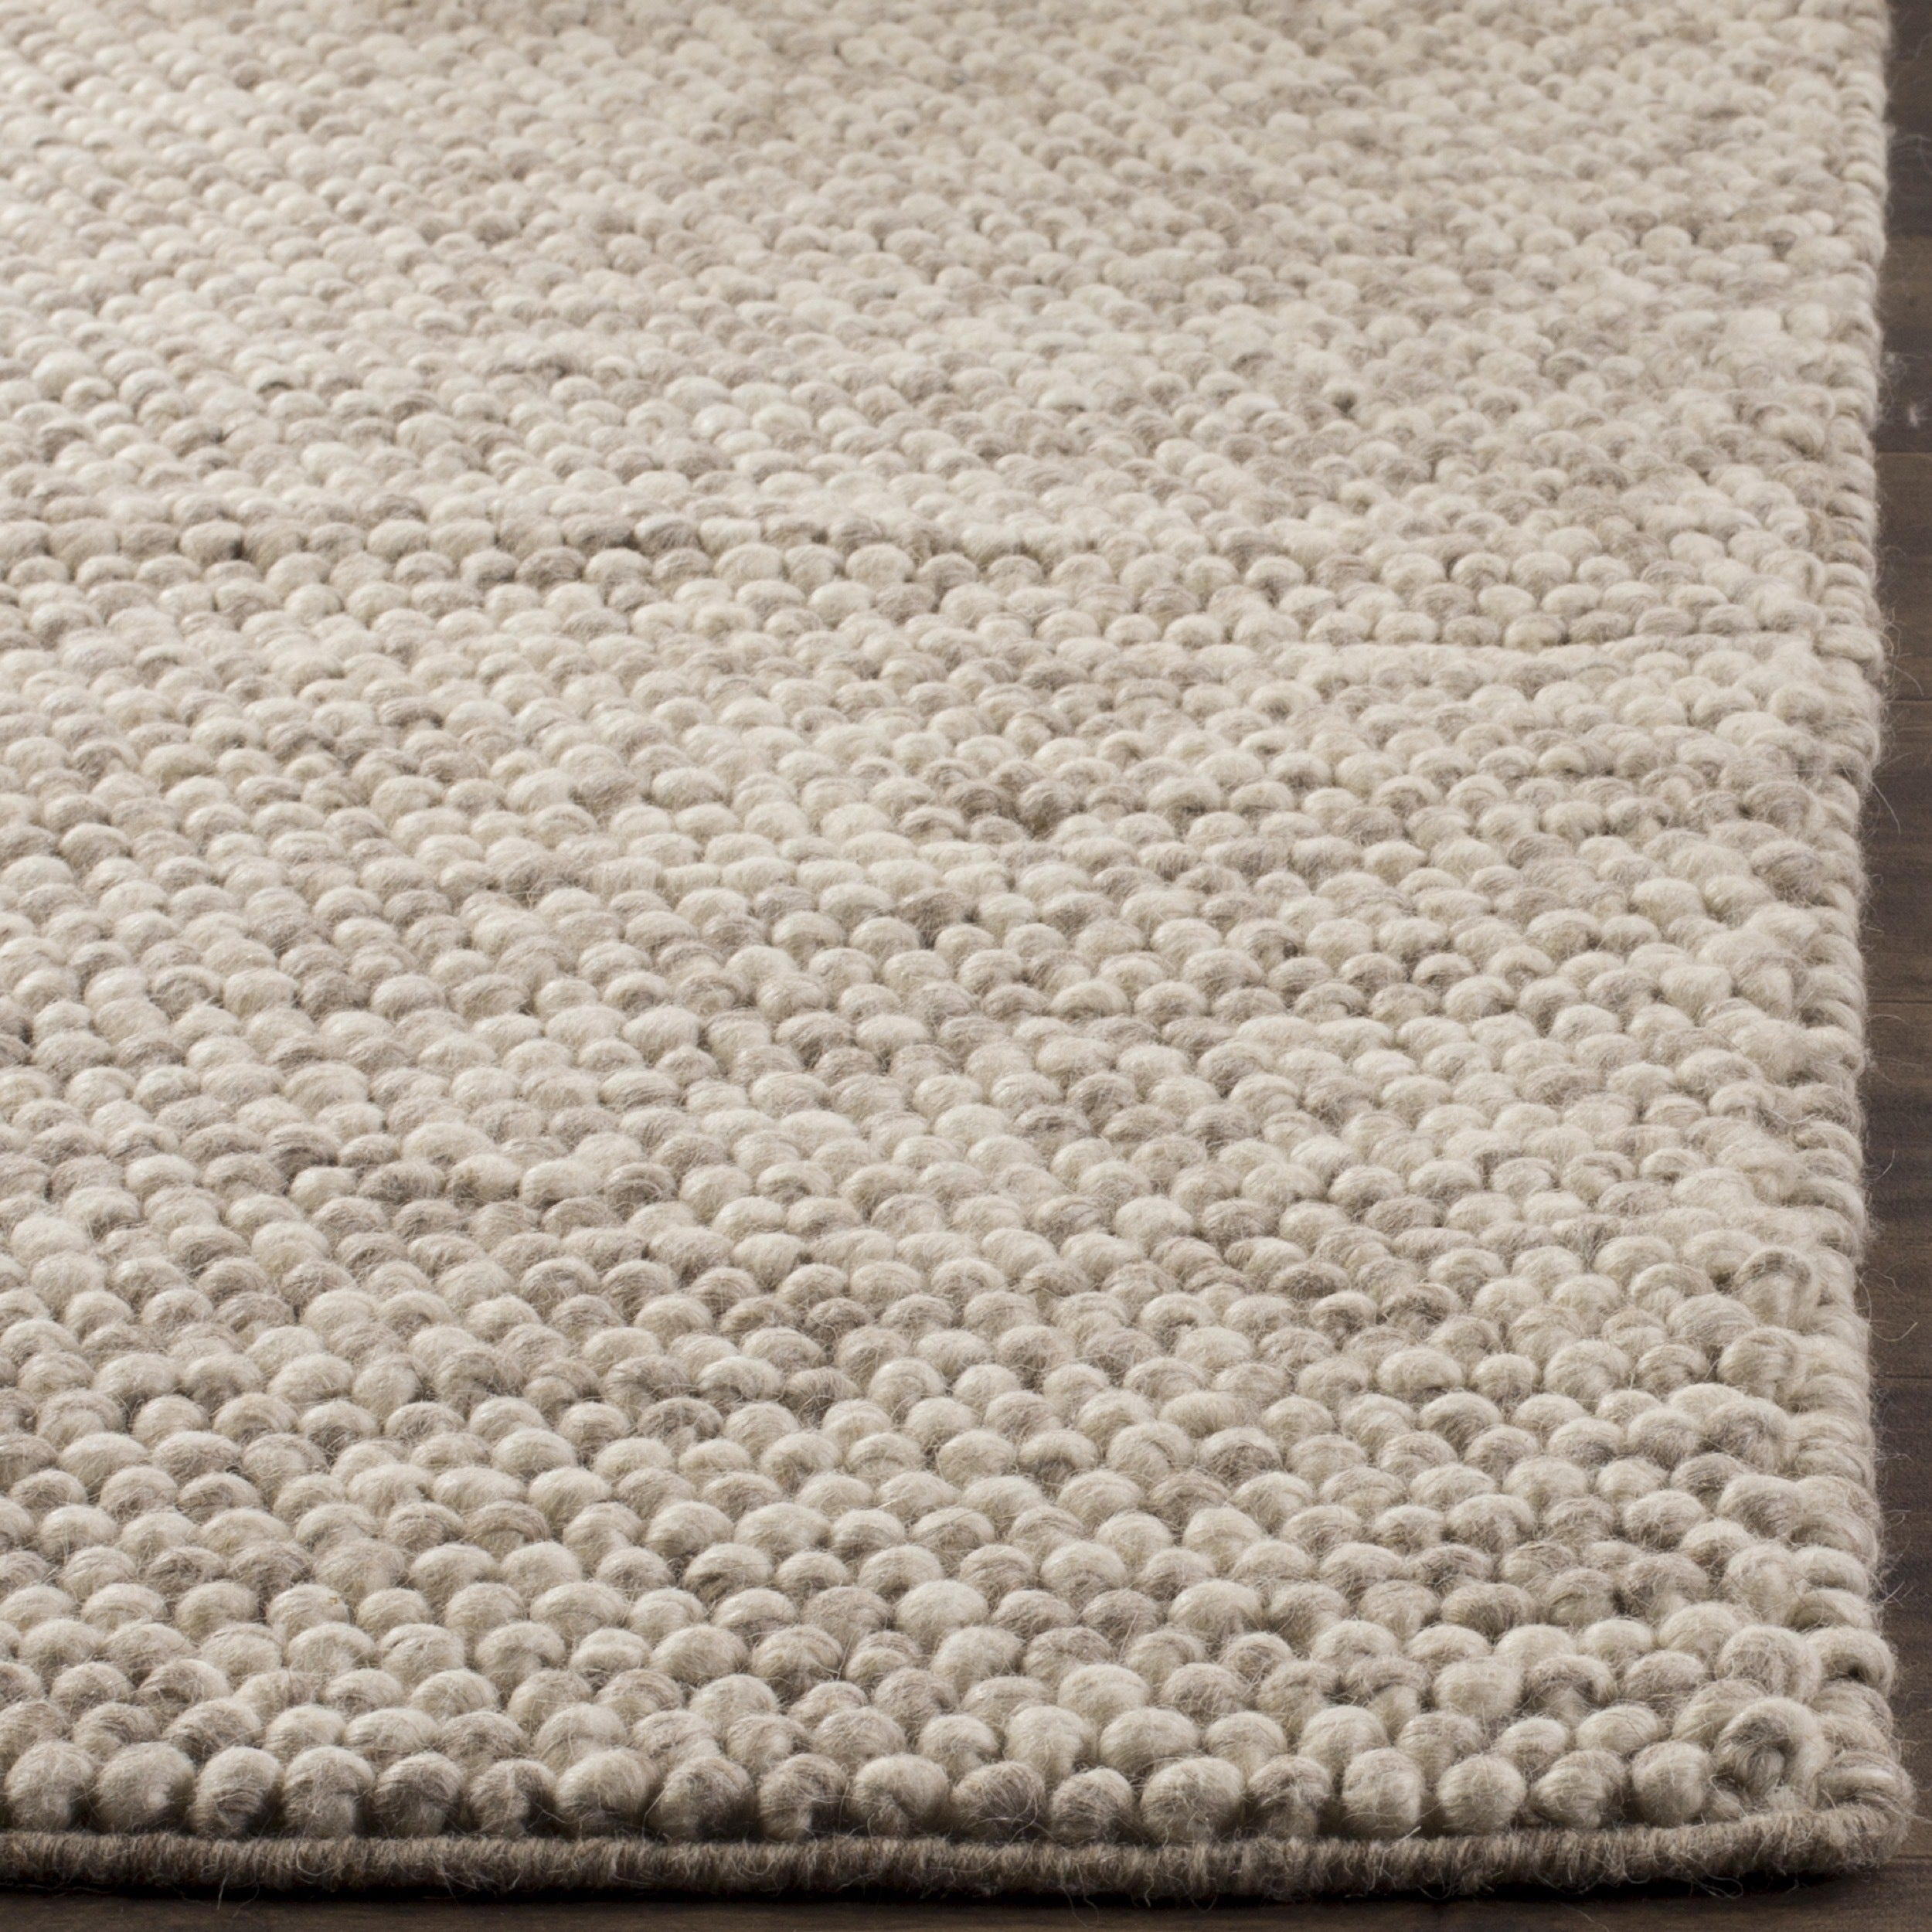 Cotton Area Rugs 6x9 Uniquely Modern Rugs